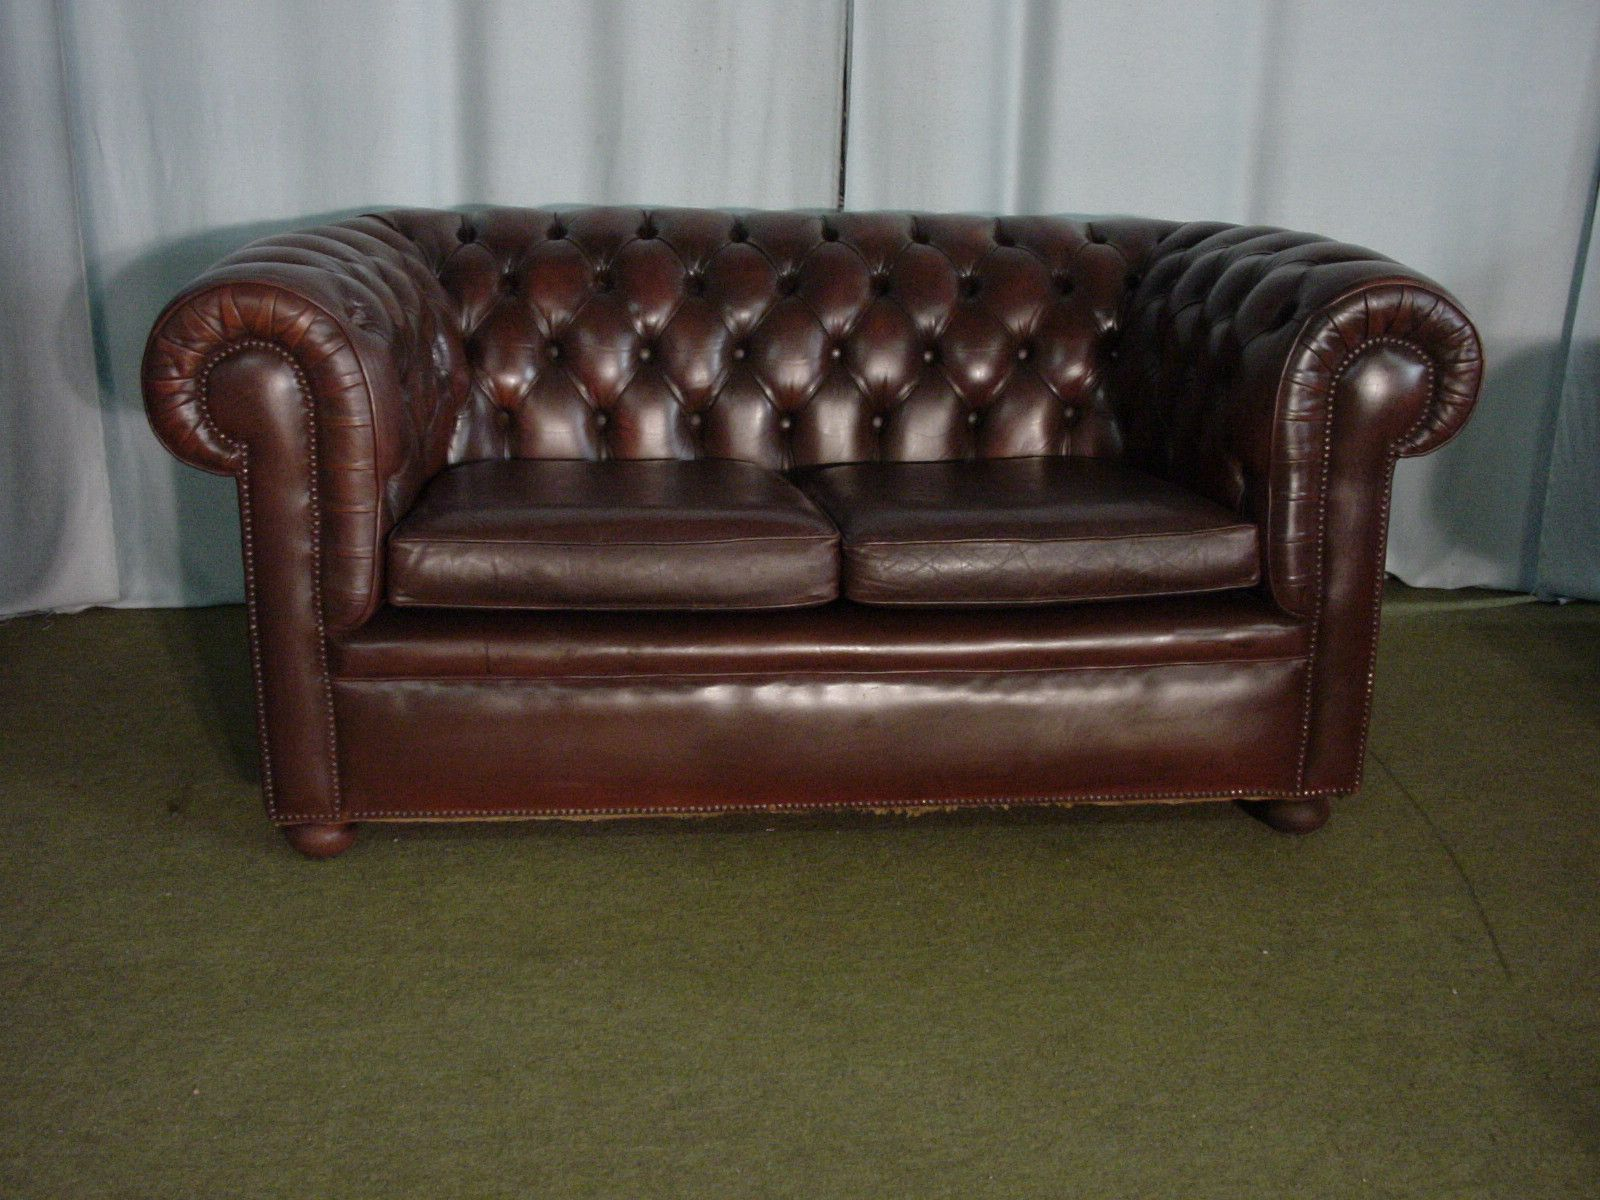 Canapé Chesterfield 2 Places Canapé Chesterfield Marron 2 Places Arrivage D été Fauteuil